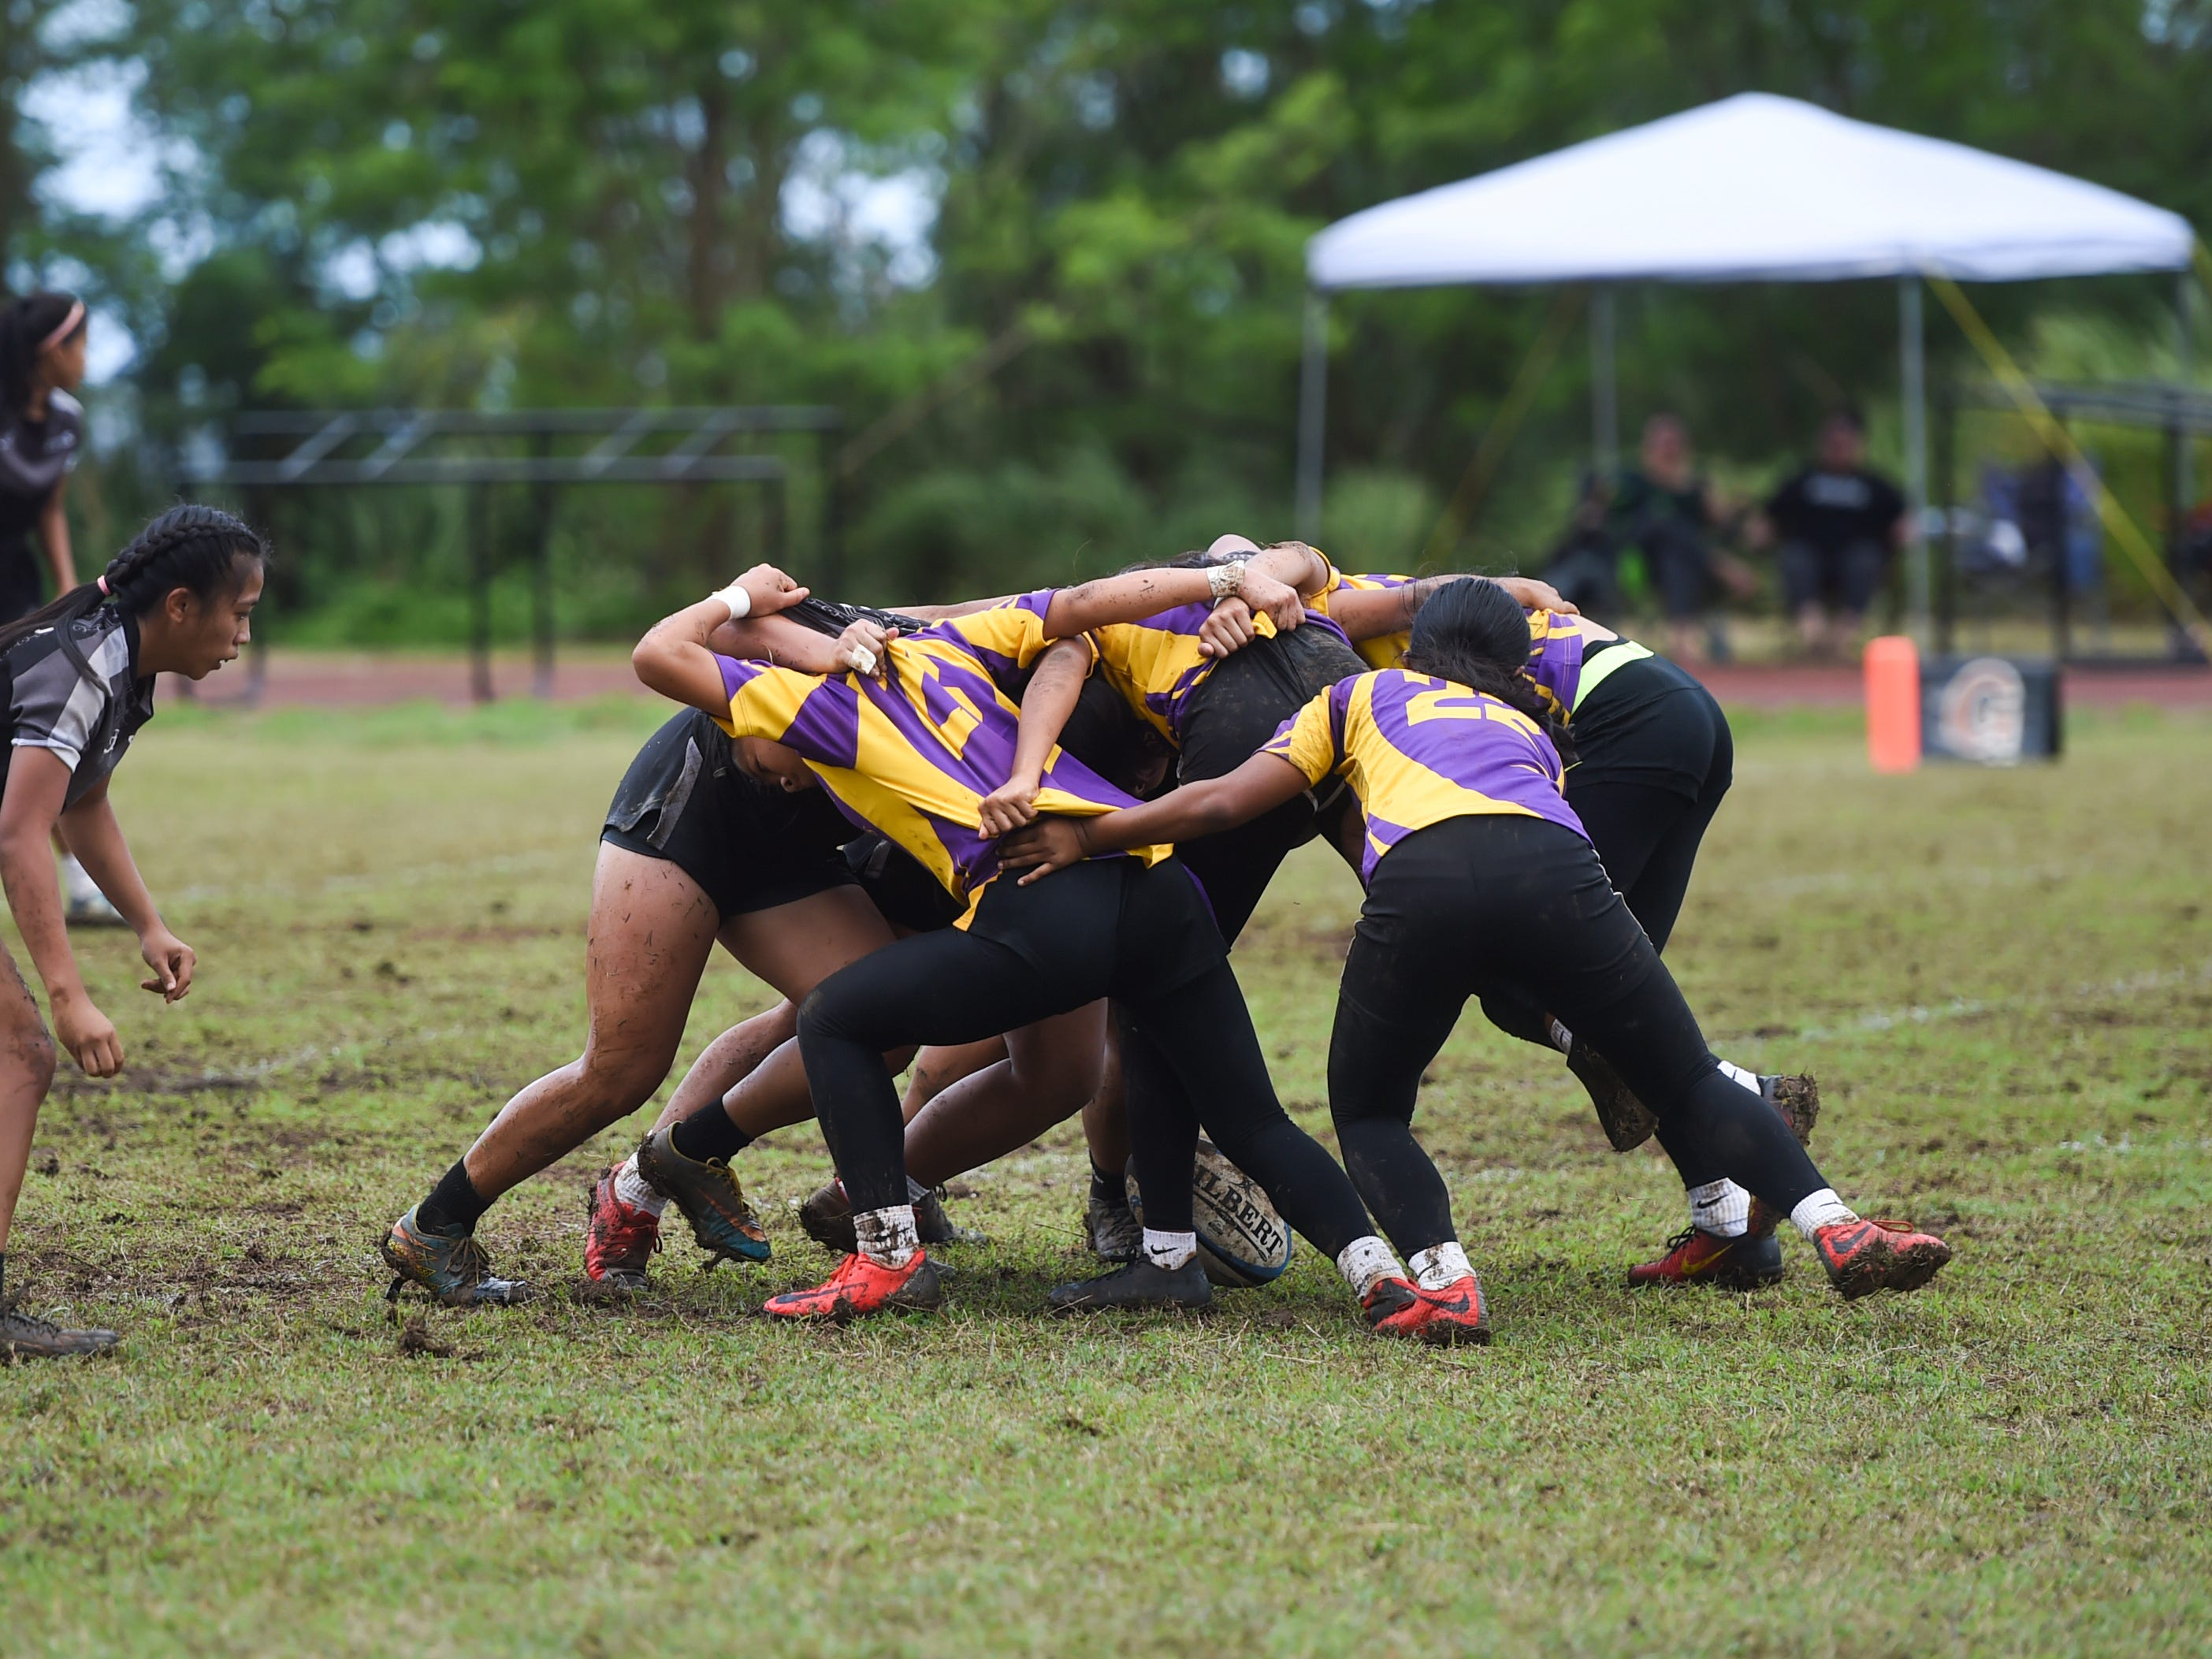 Simon Sanchez Sharks and George Washington Geckos players engage in a scrum during their IIAAG Girls' Rugby match at the Southern High School field, Feb. 9, 2019.